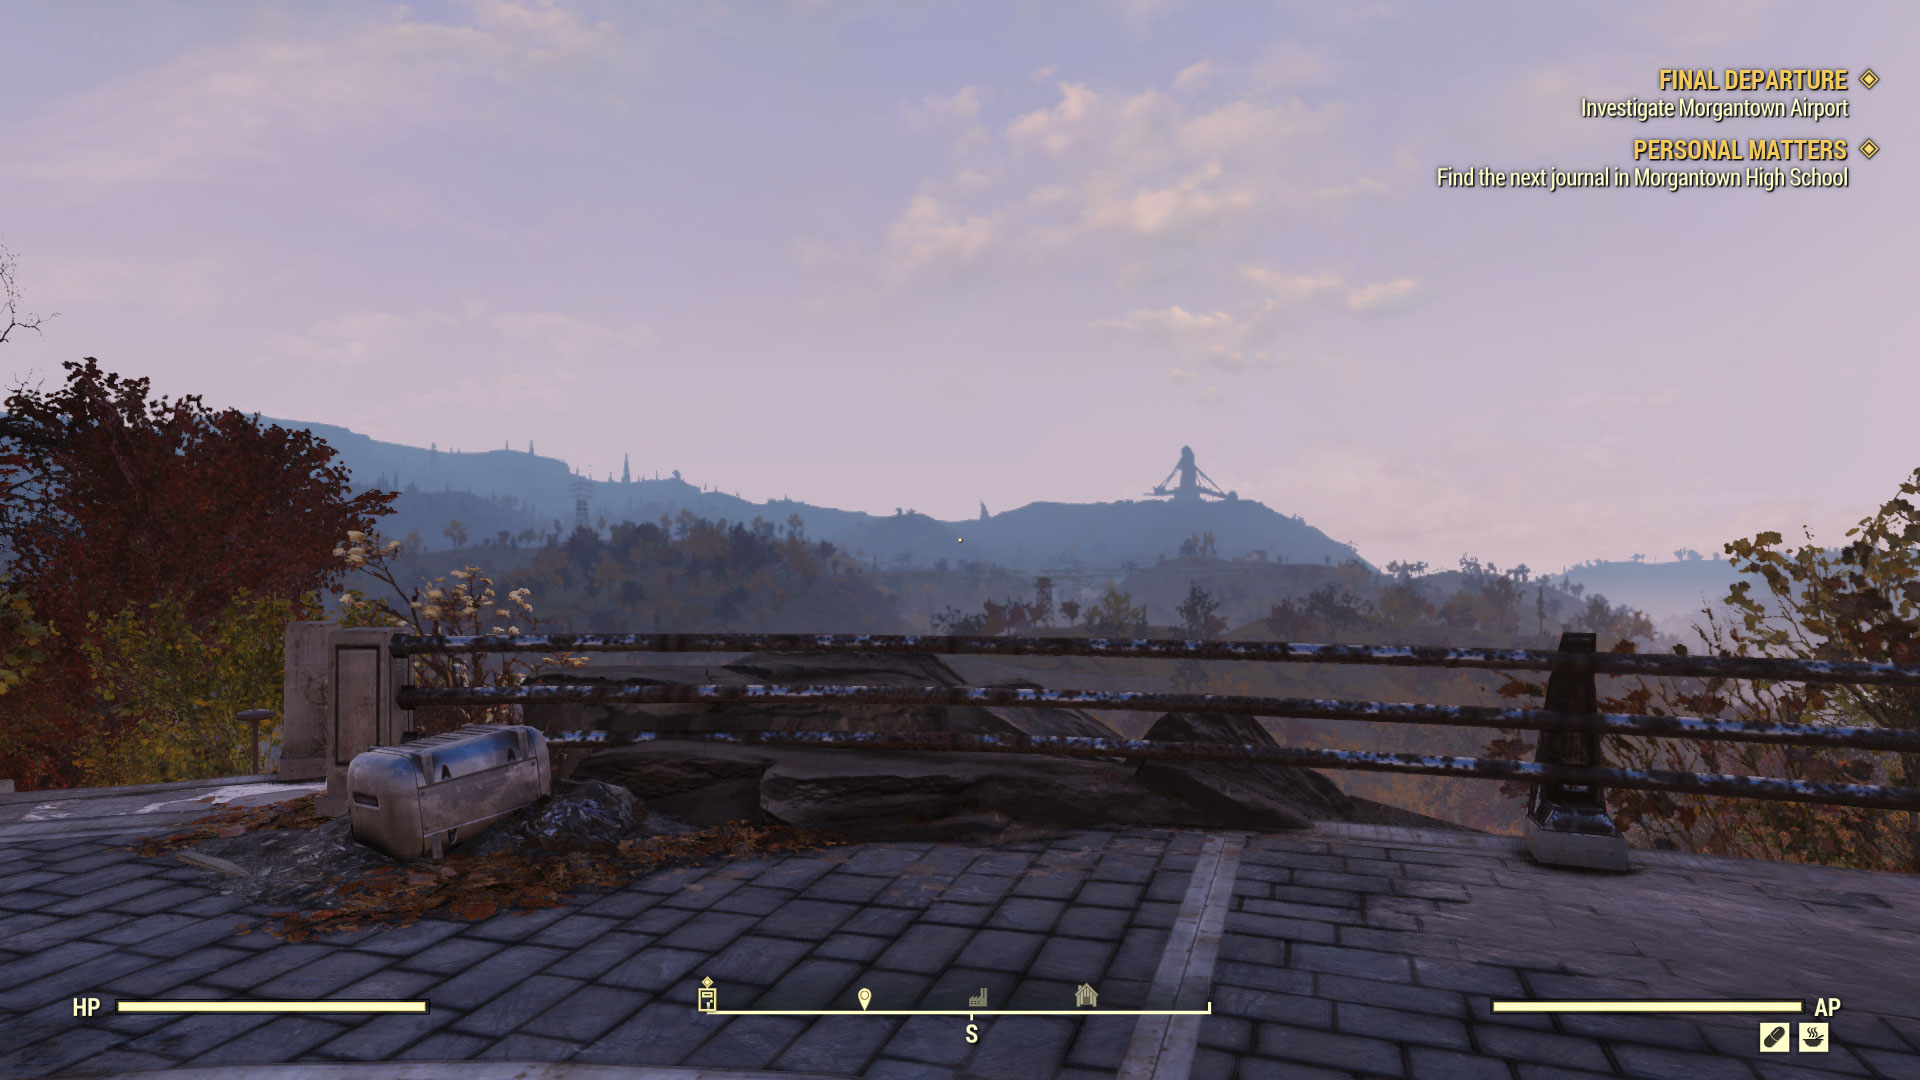 The 1 14 Fallout 76 patch allows unlocked fps and fixes